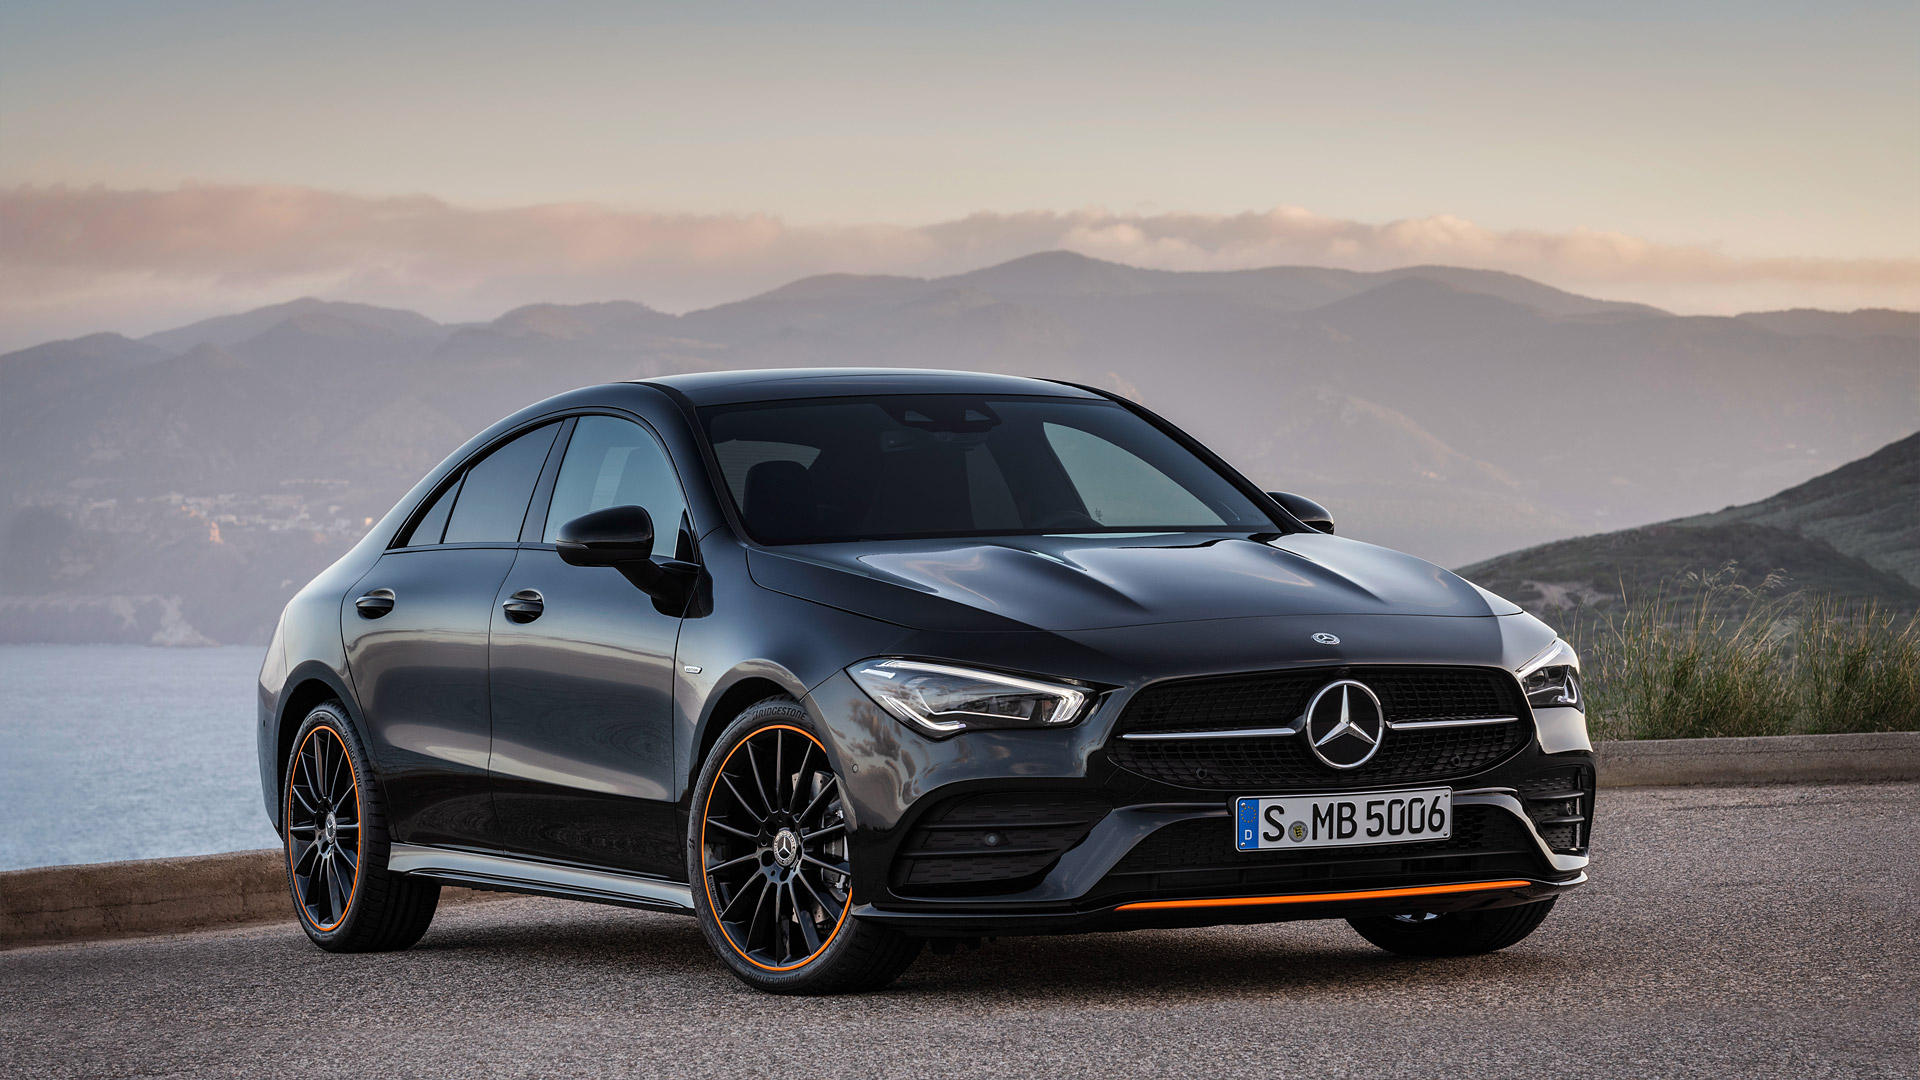 2020 Mercedes Benz CLA Wallpapers HD Images   WSupercars 1920x1080